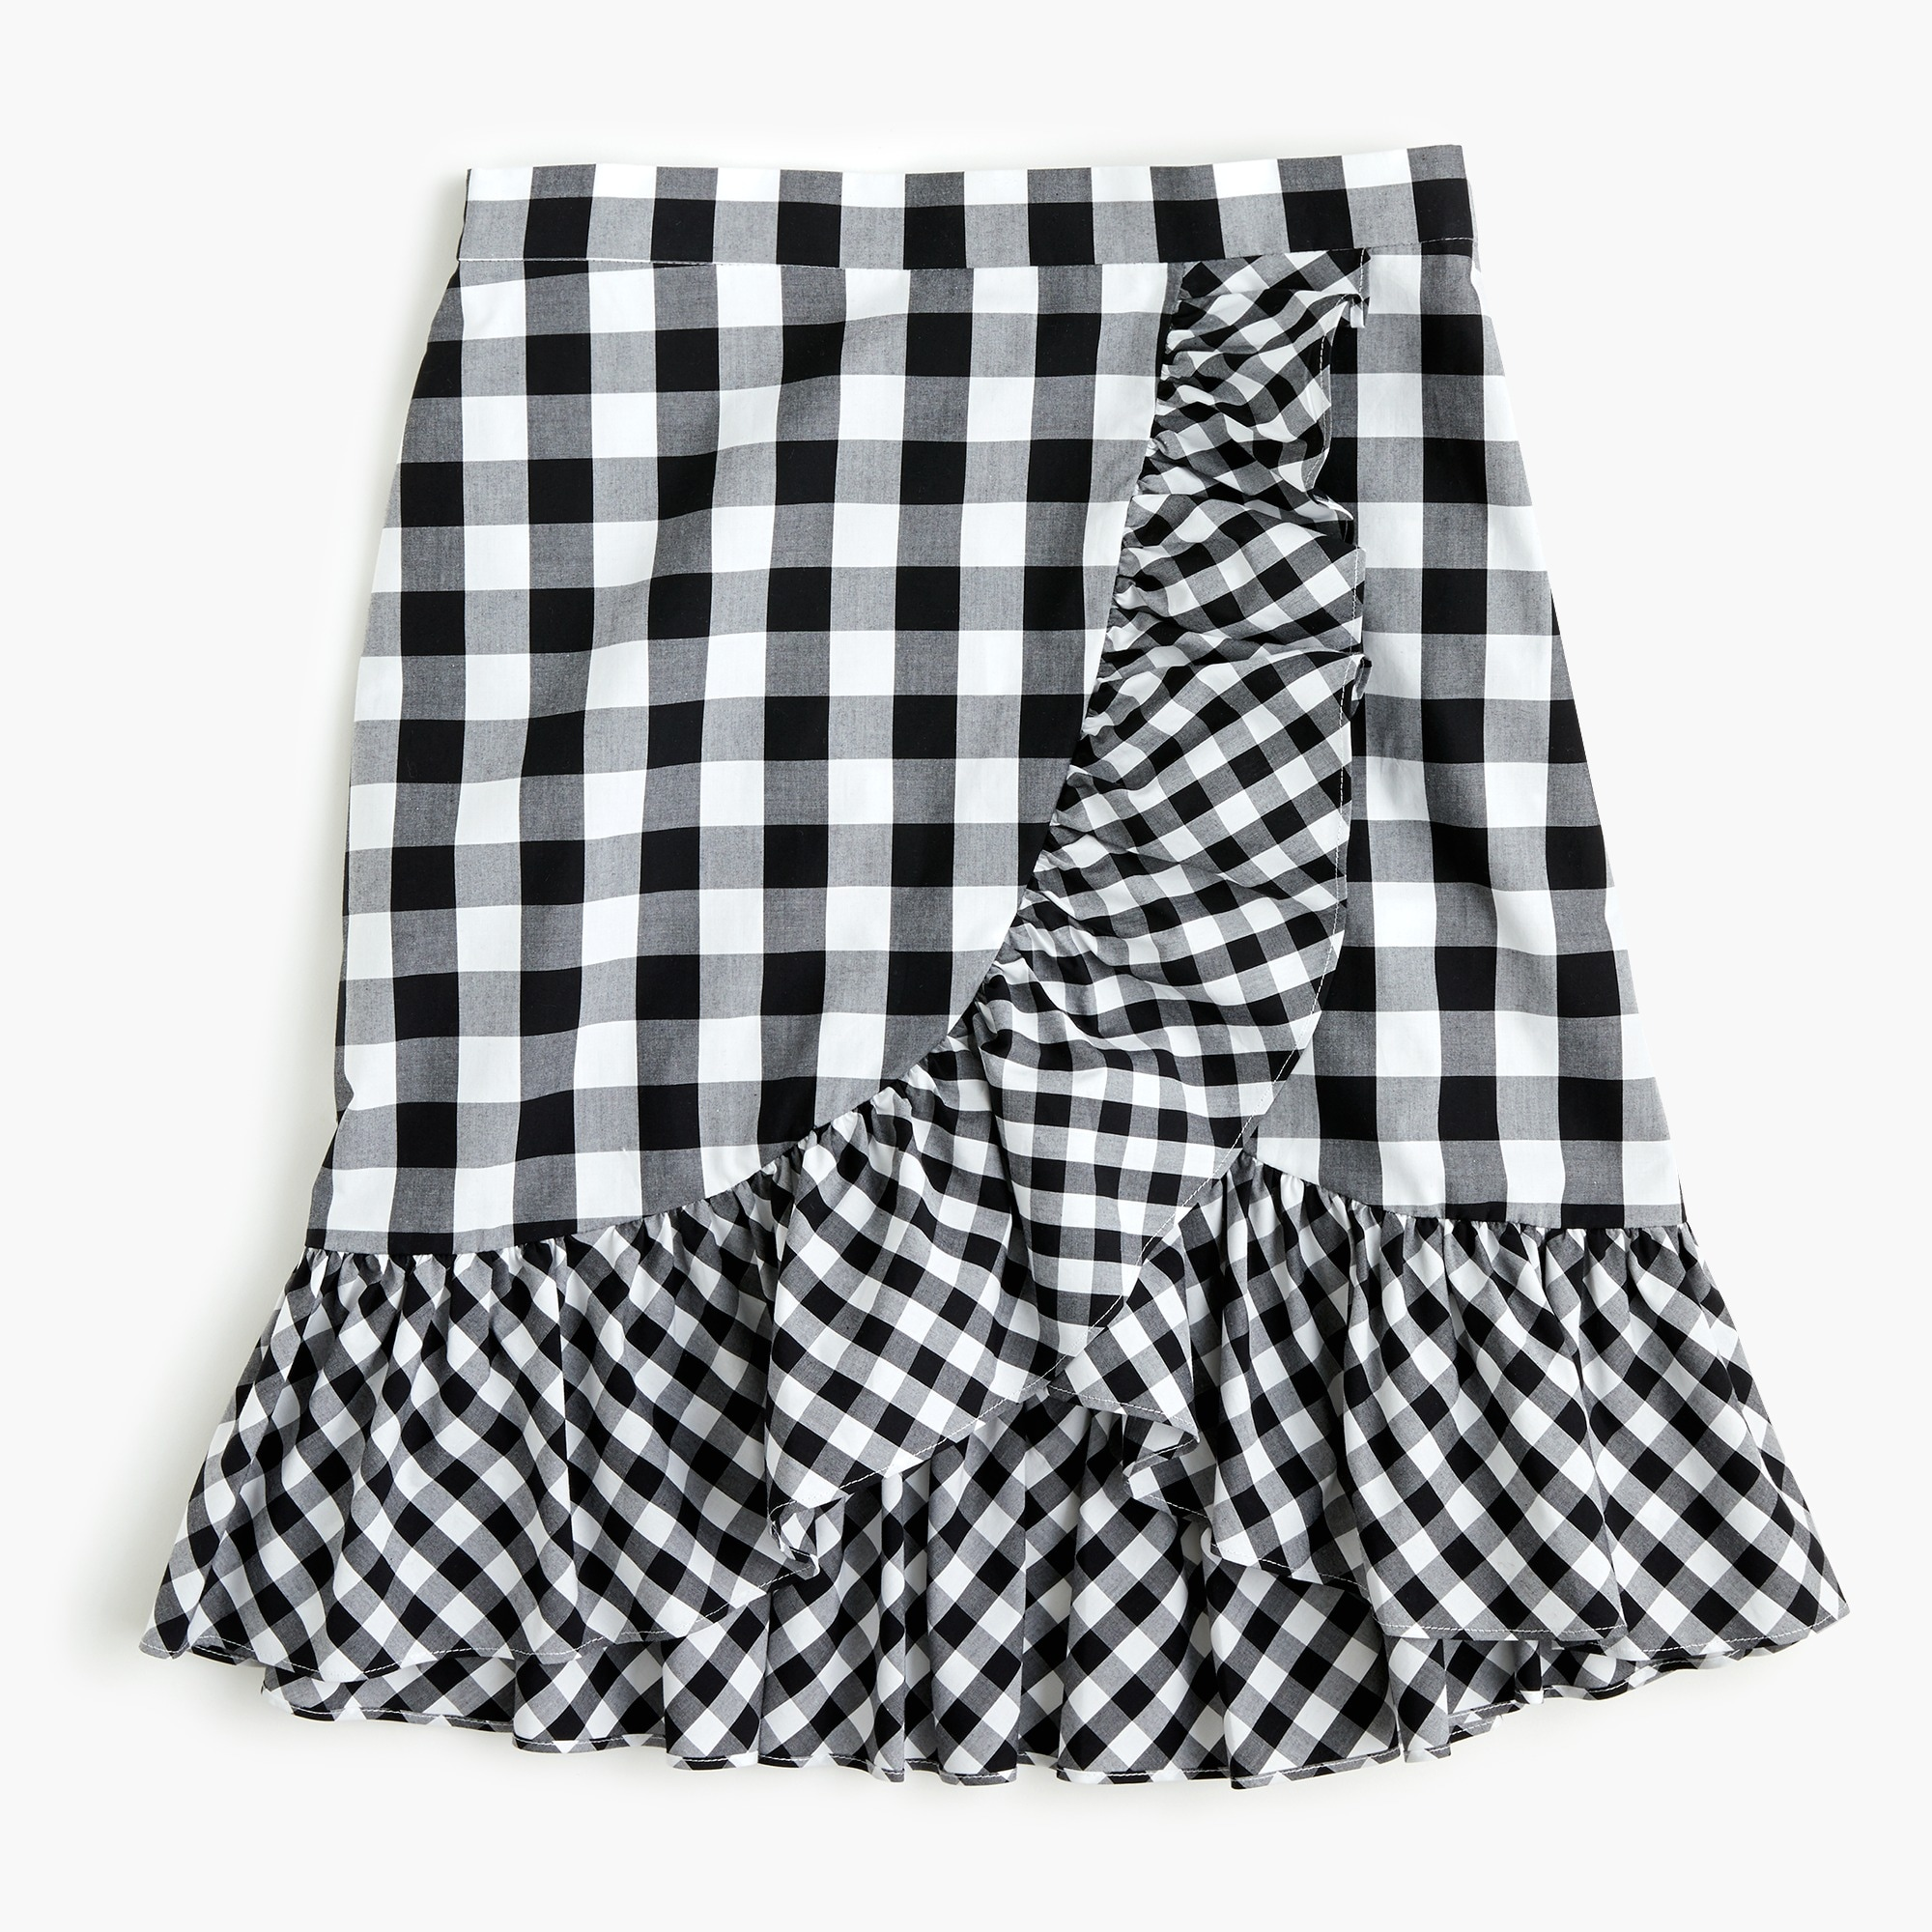 Image 2 for Ruffle mini skirt in gingham